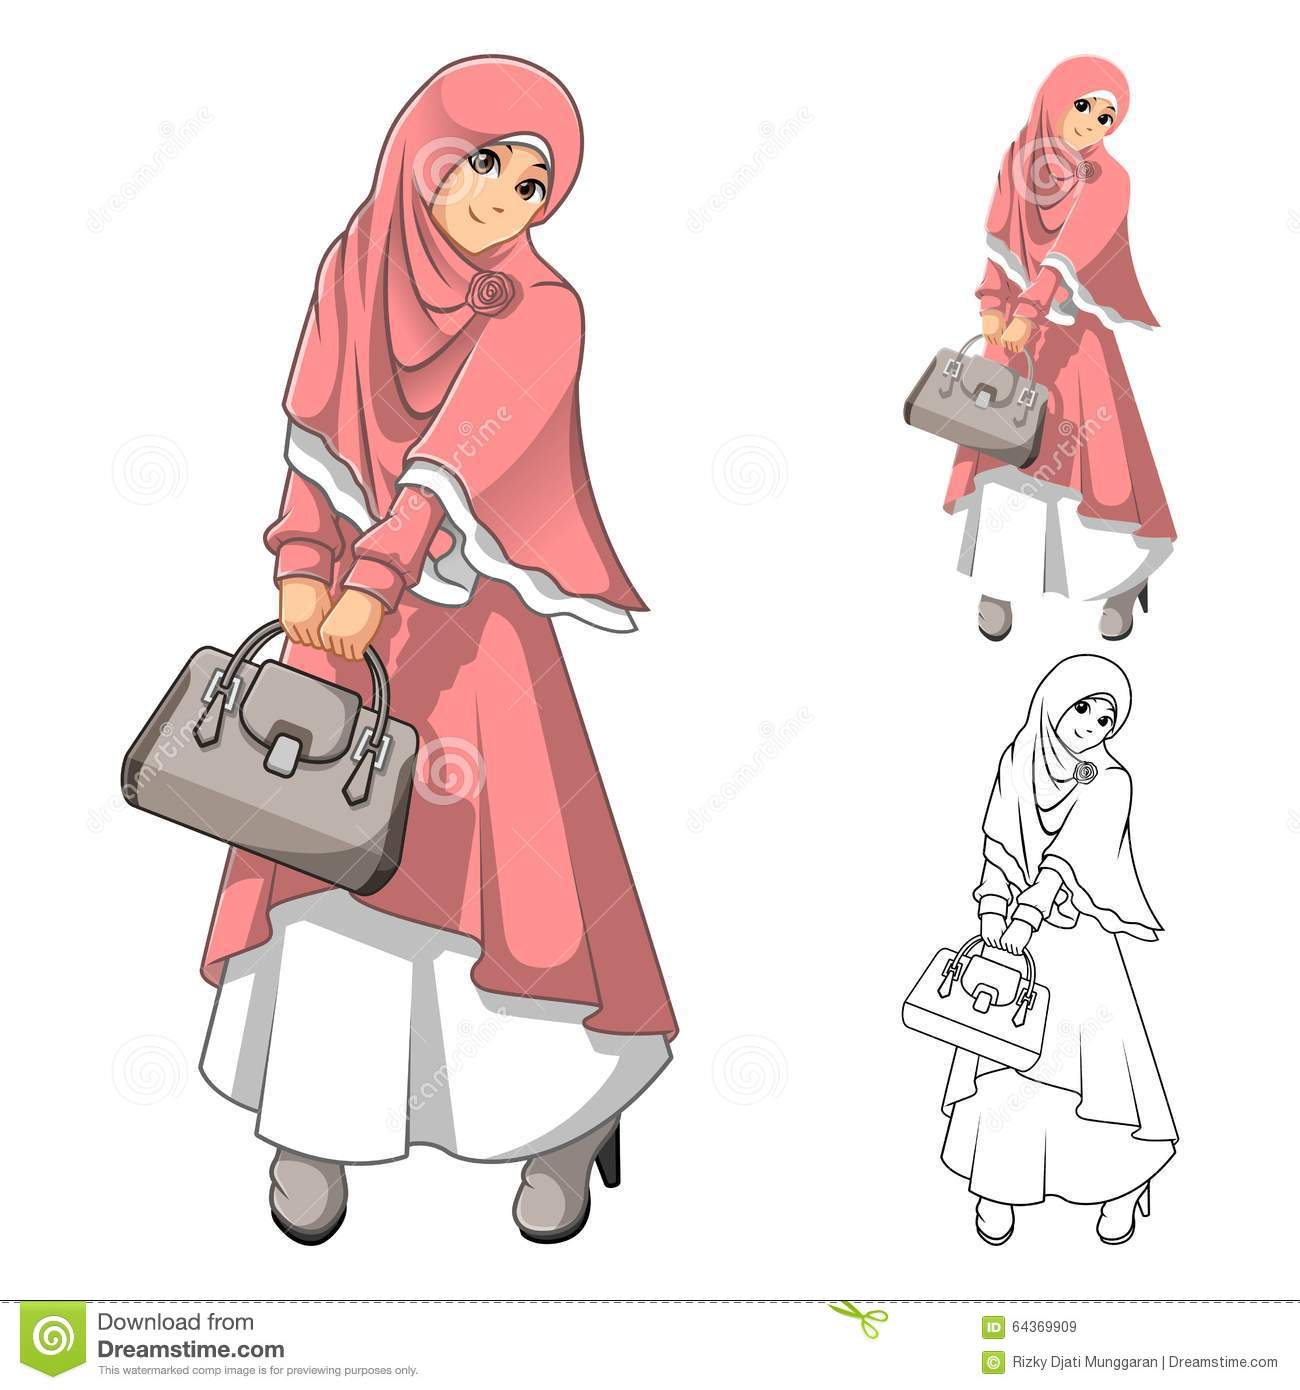 Muslim Girl Fashion Wearing Green Veil or Scarf with Yellow Jacket and Boots